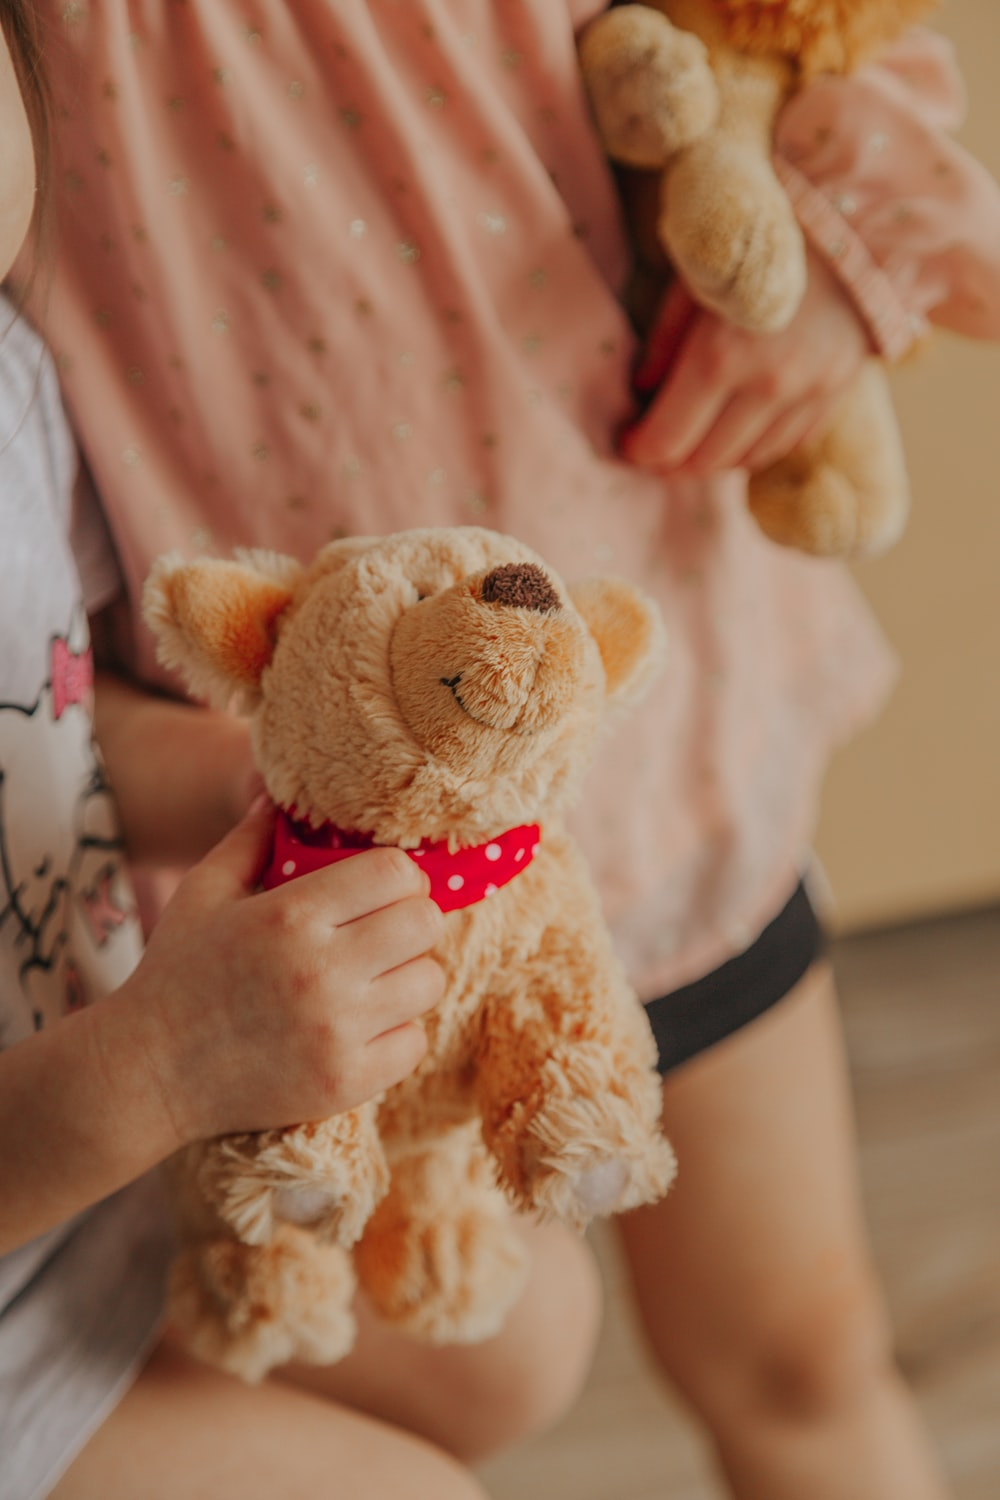 brown bear plush toy on persons hand